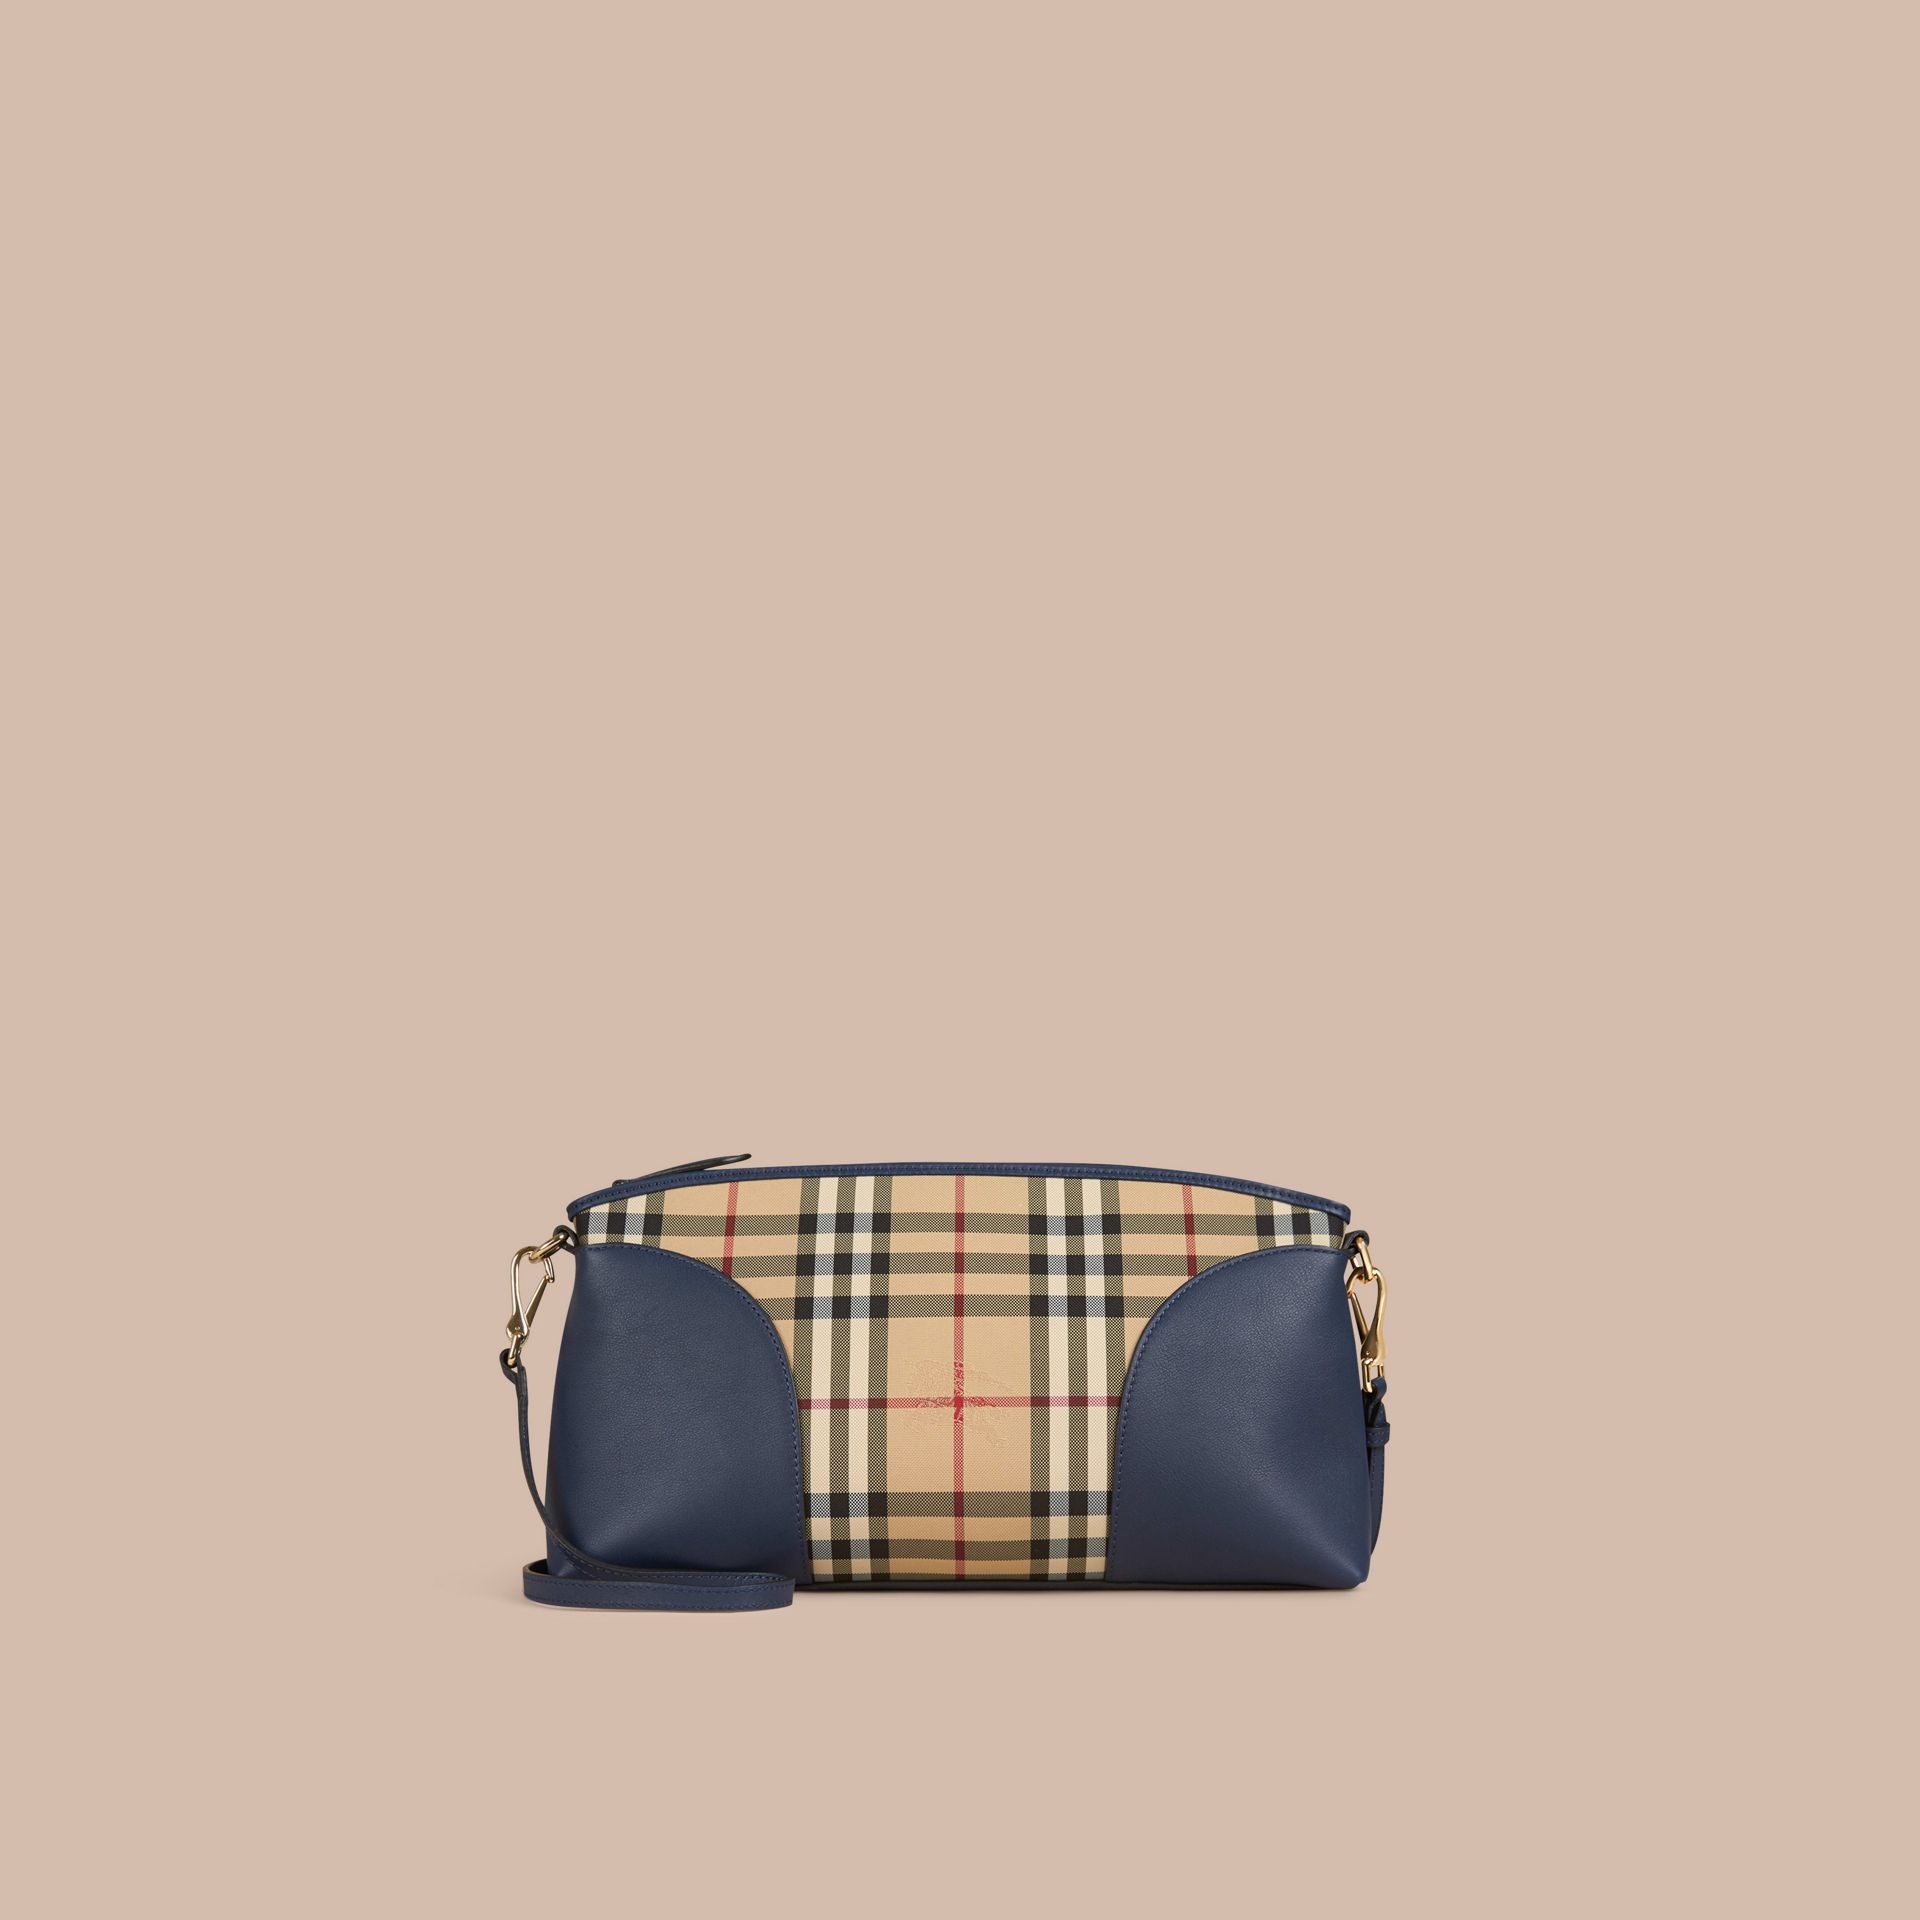 Honey/brilliant navy Horseferry Check and Leather Clutch Bag Honey/brilliant Navy - gallery image 7